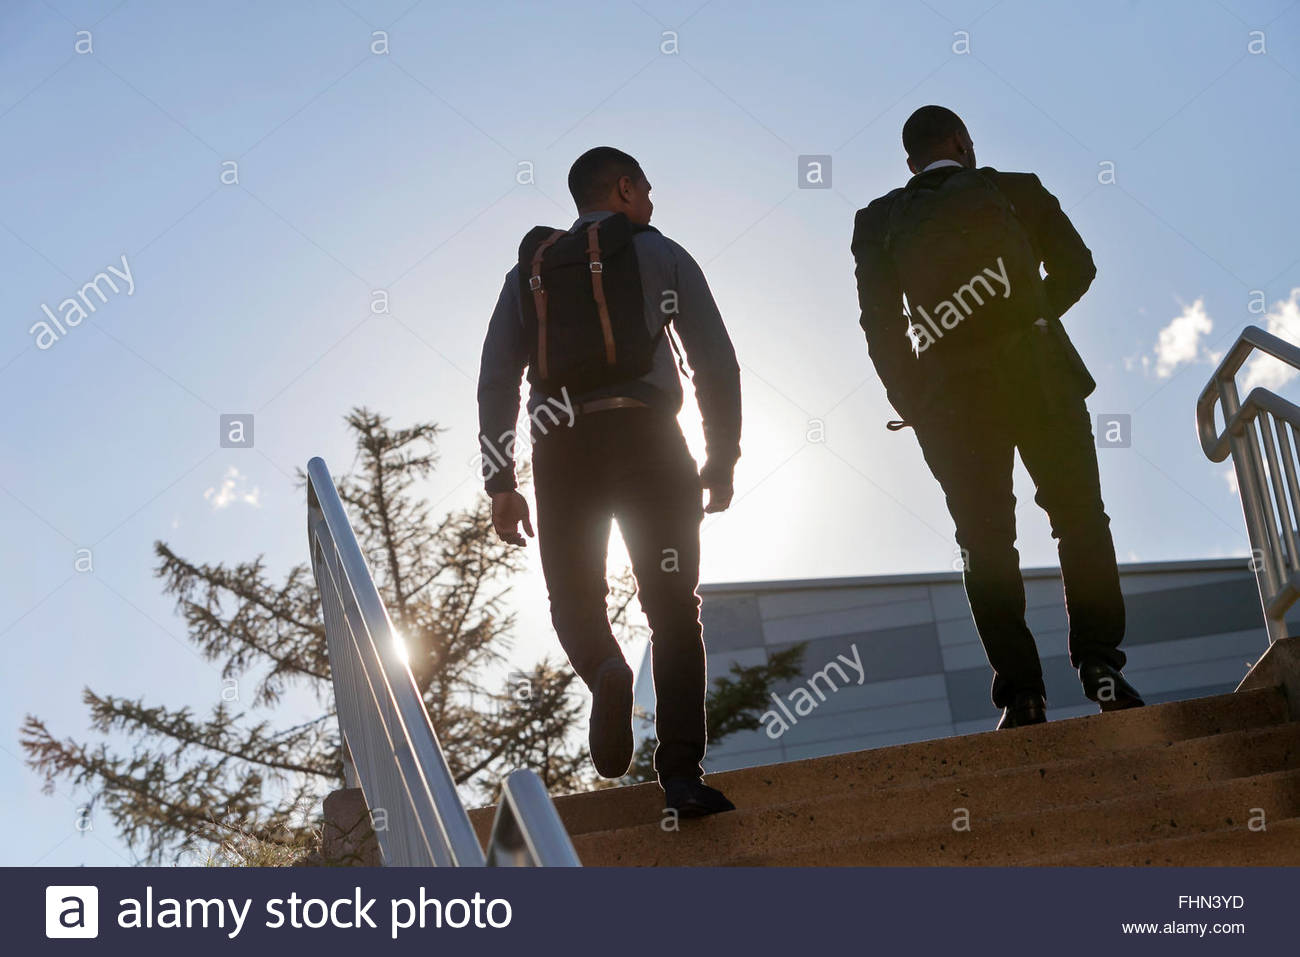 Two young men walking up exterior stairs in a silhouette. - Stock Image